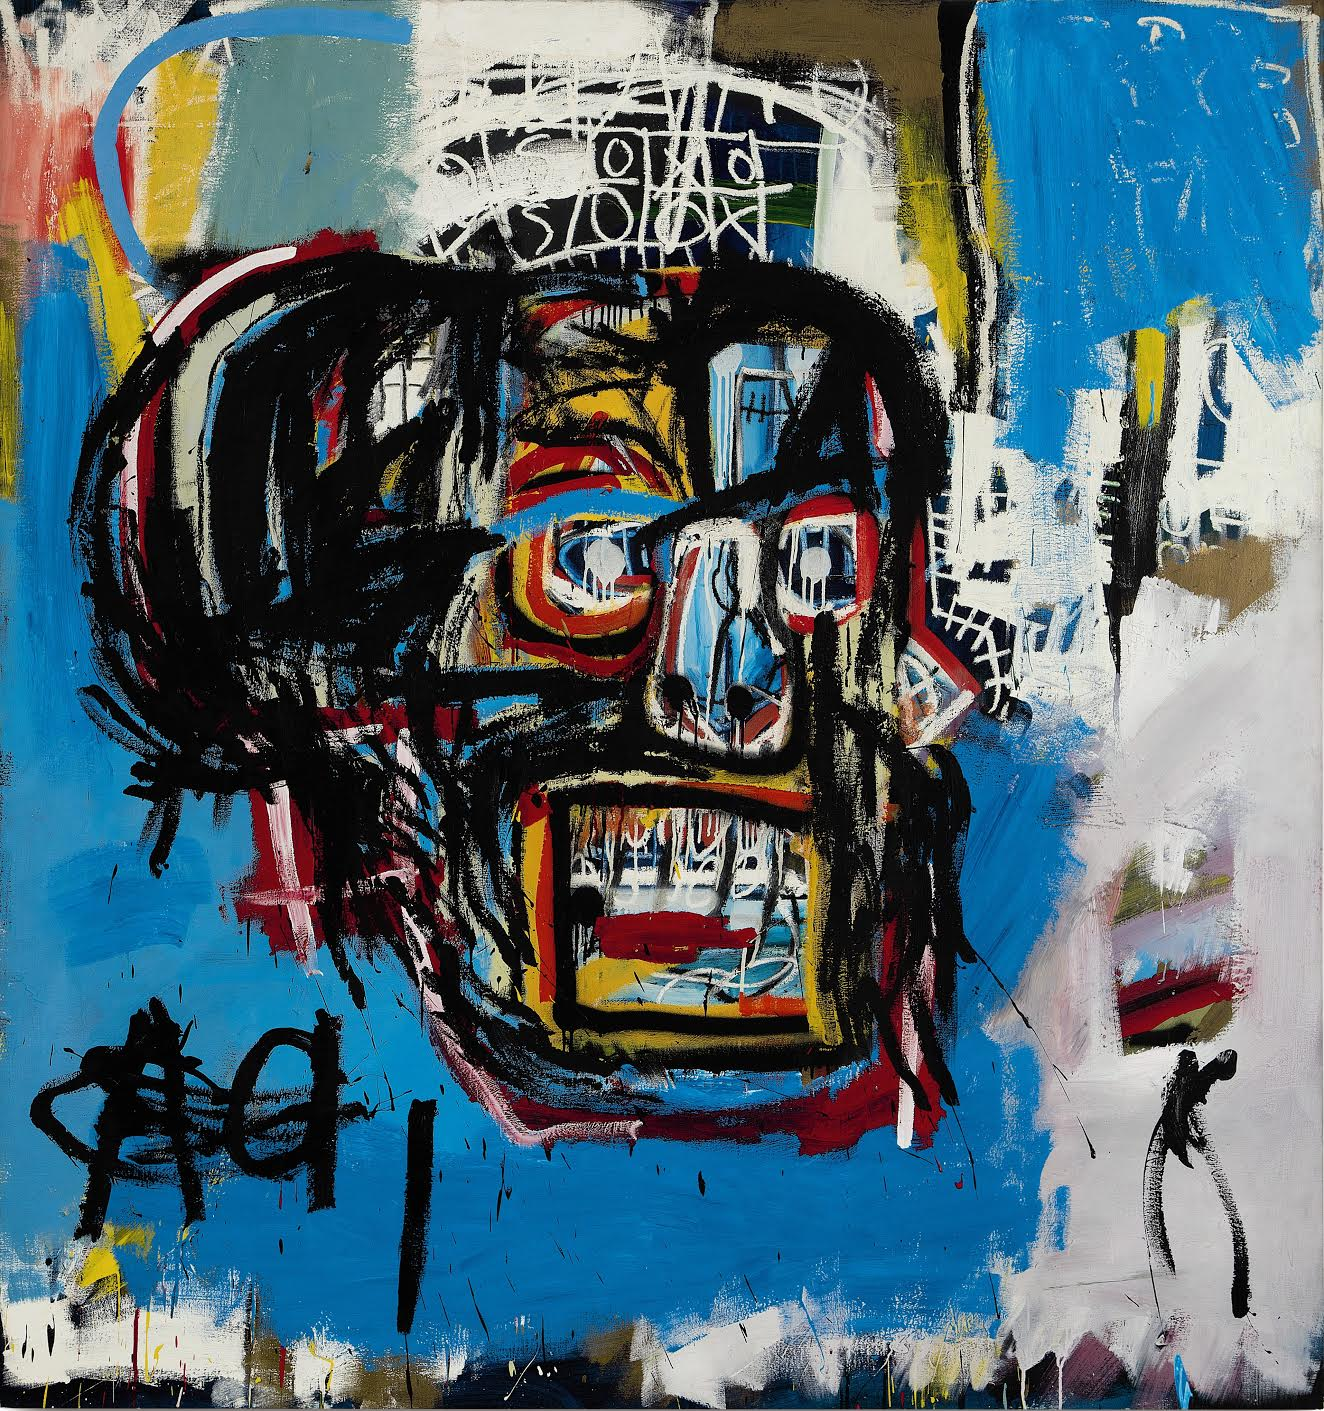 Jean Michel-Basquiat, Untitled, 1982, Oilstick, acrylic and spraypaint on canvas, 72 1/8 by 68 1/8 in.